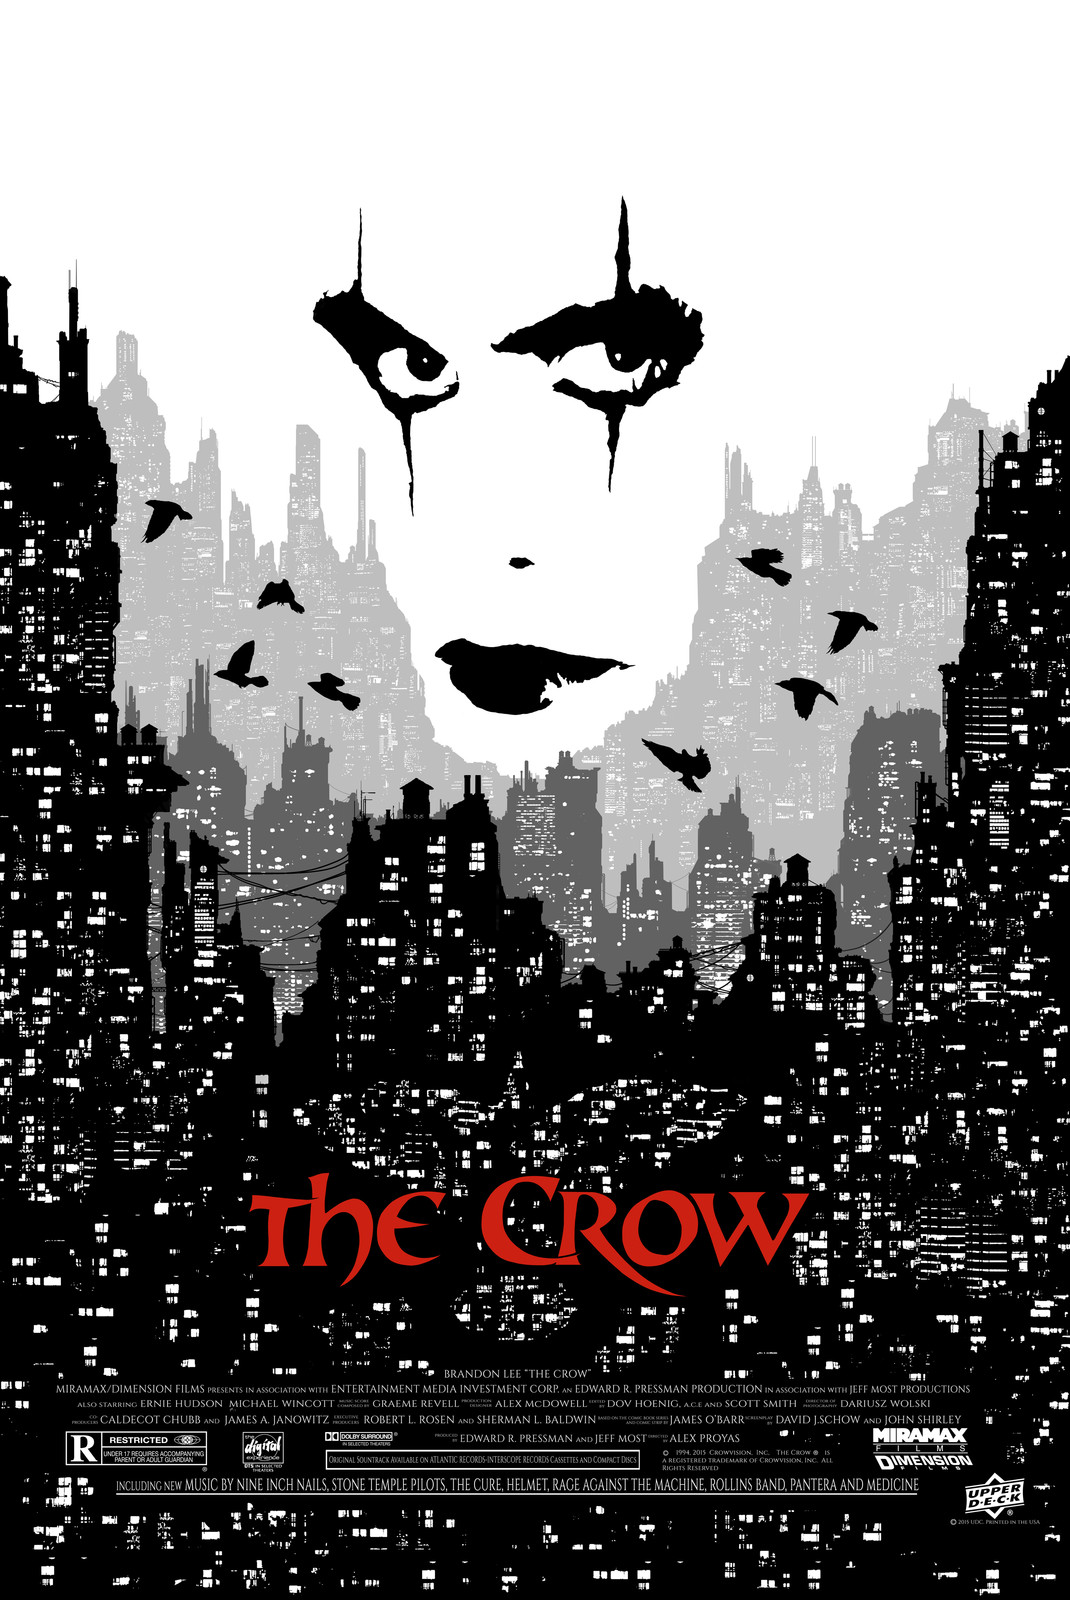 The Crow - 20th Anniversary Posters